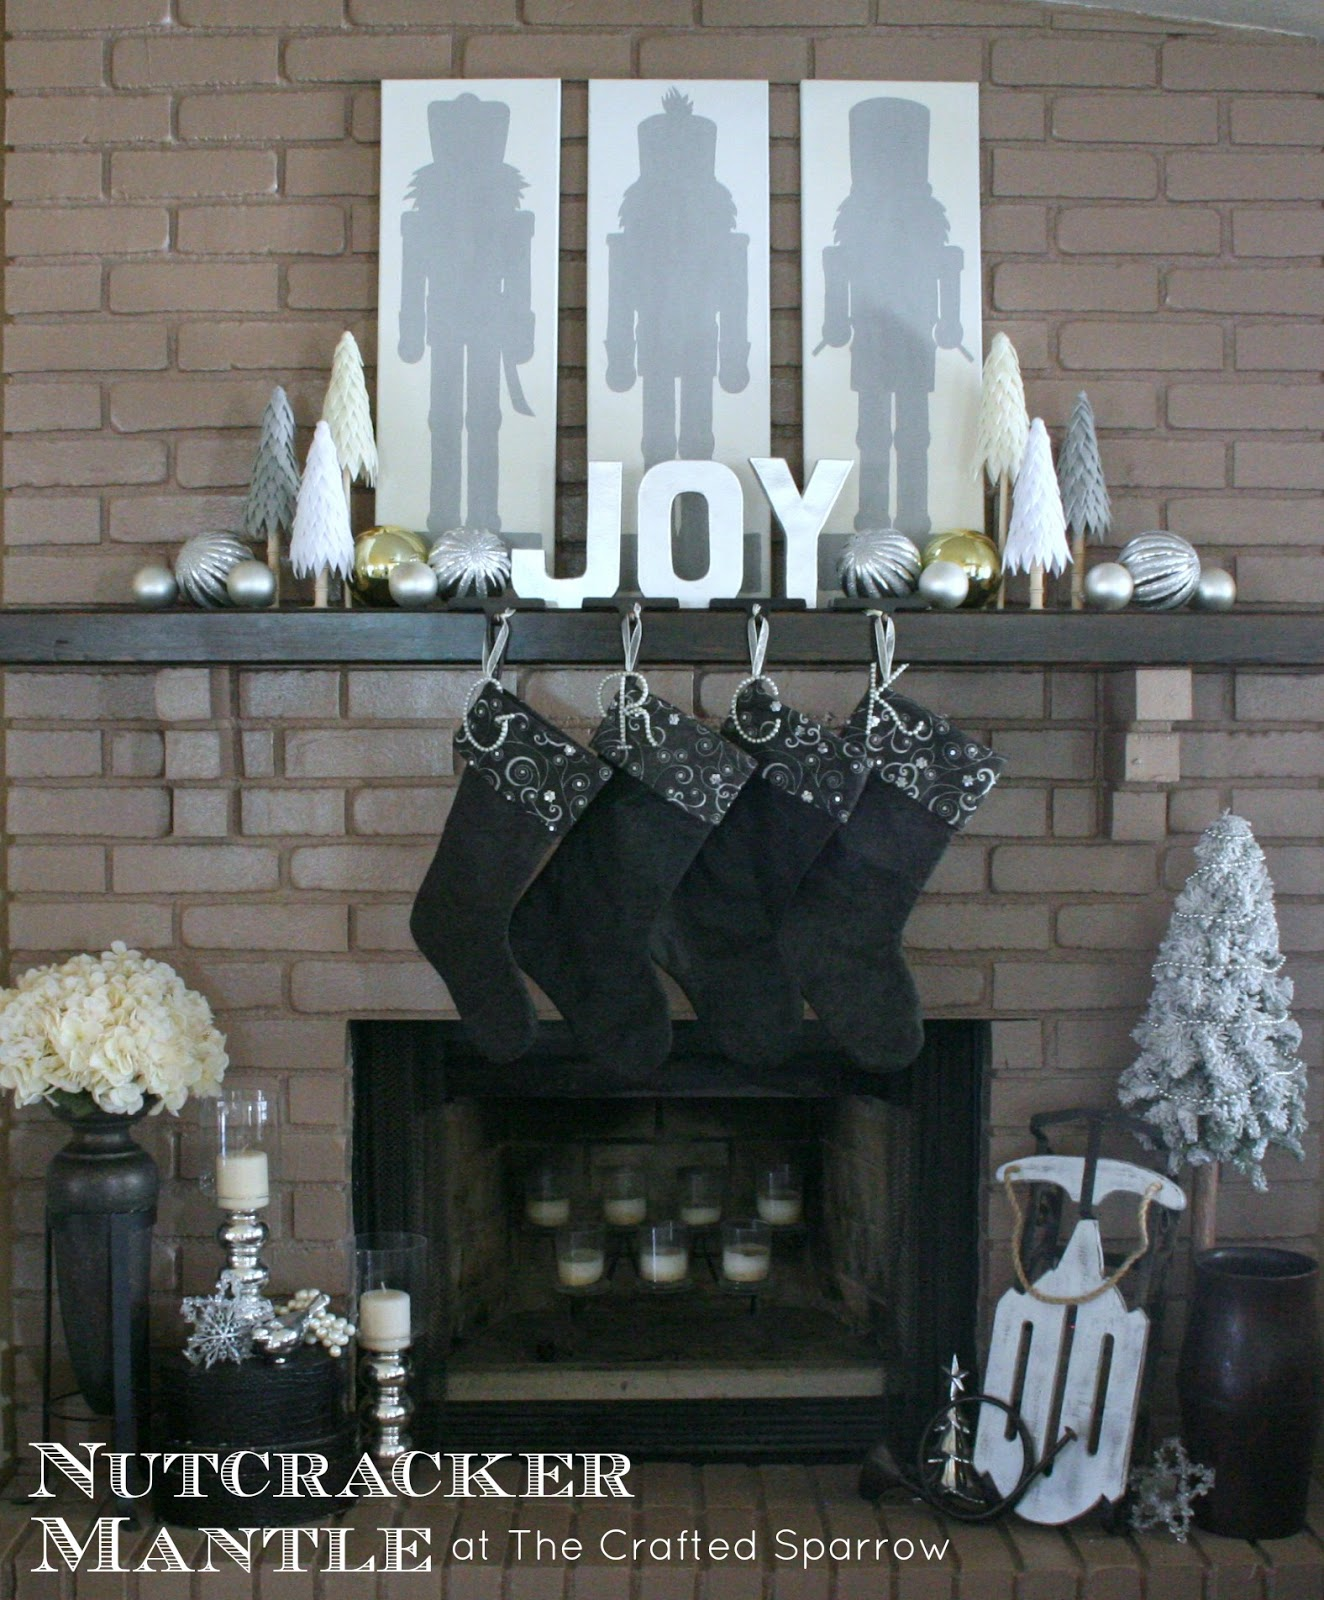 How to make a nutcracker christmas decoration - Nutcracker Christmas Mantle